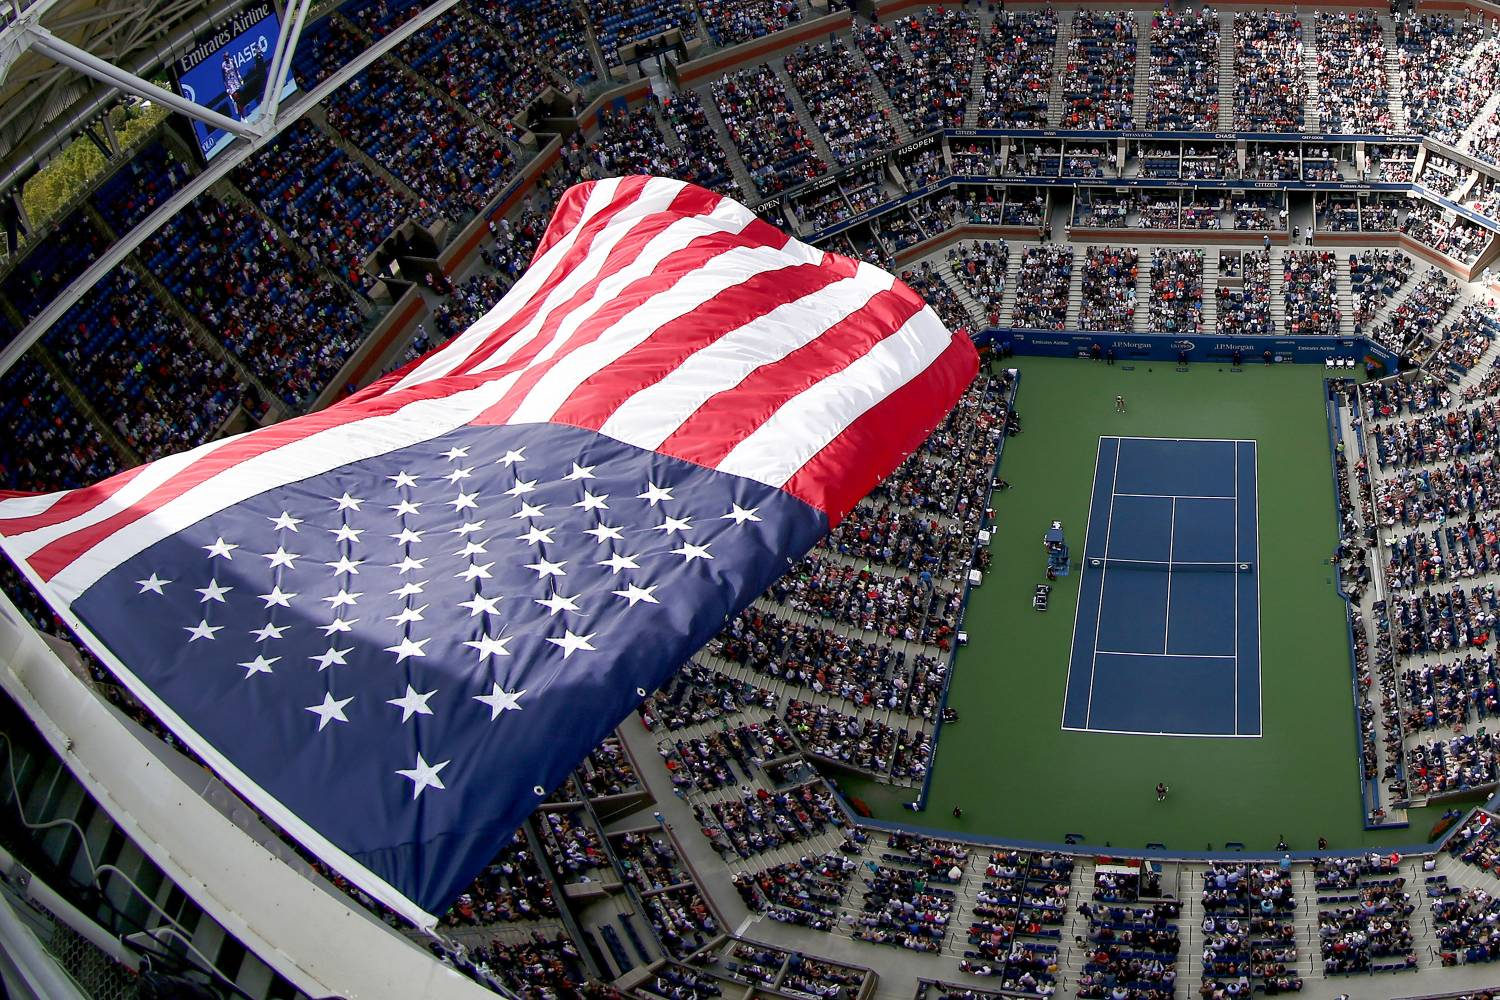 US Open Tennis Championships The Official Guide To New York City - Us open tennis location map